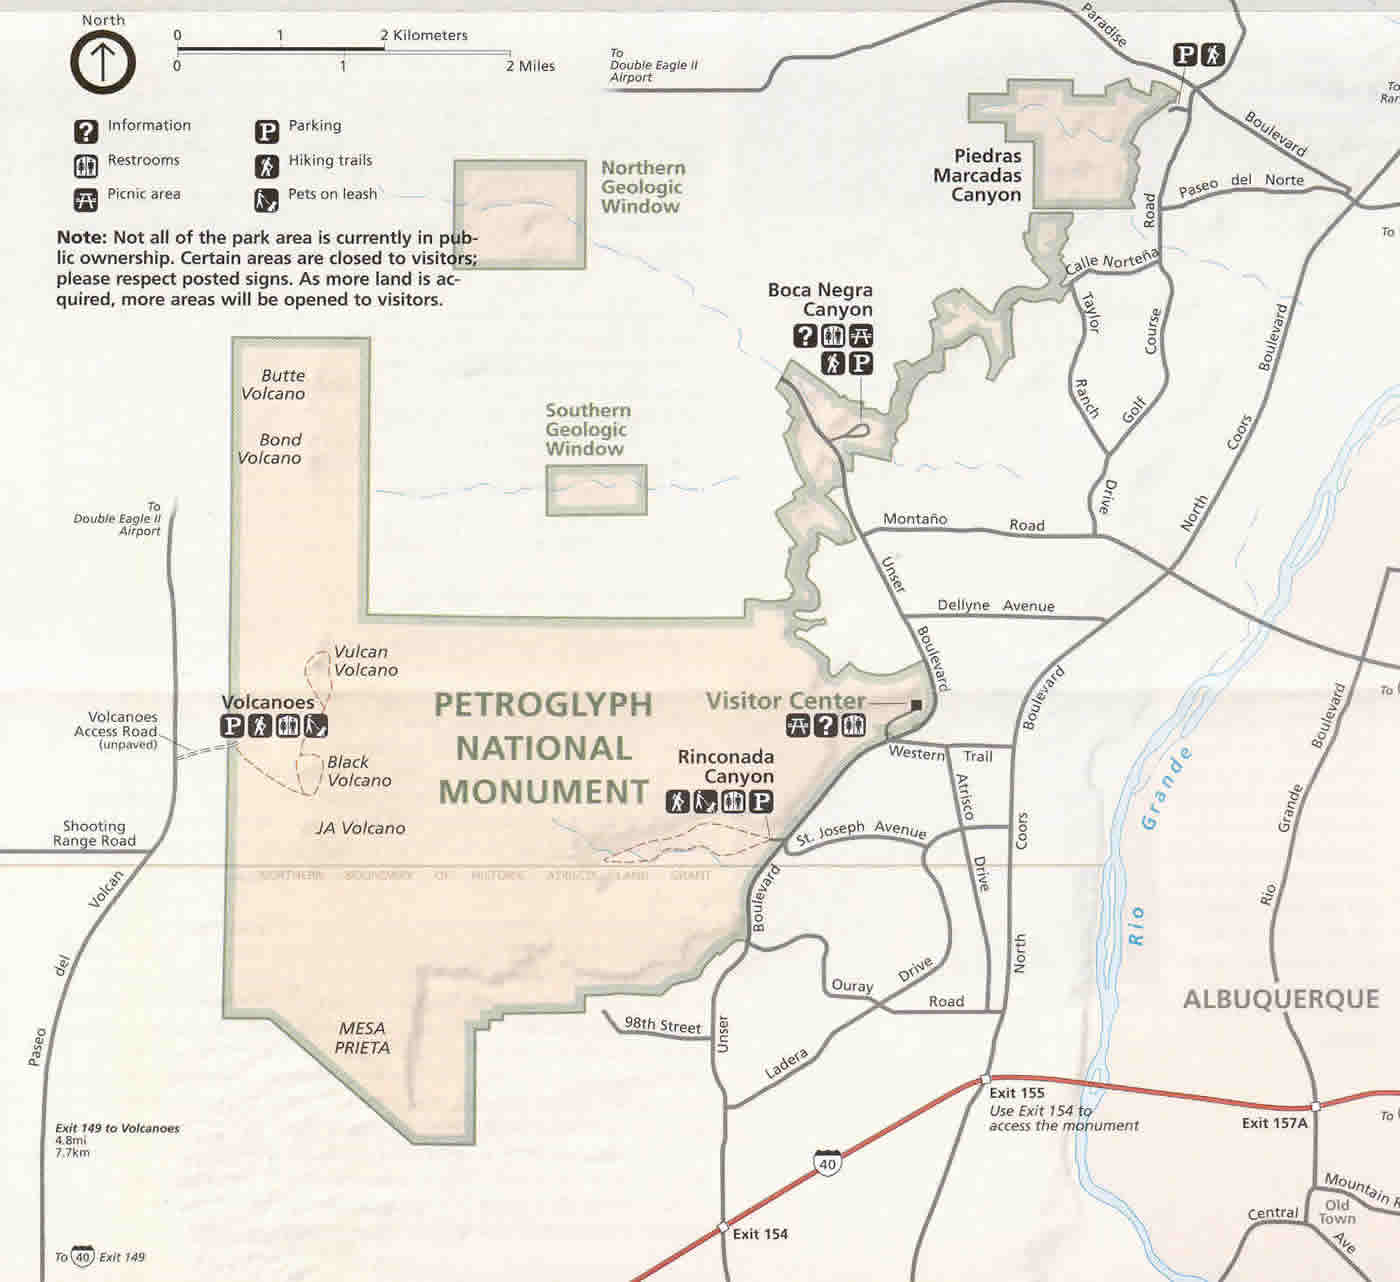 National Parks In New Mexico Map.Visiting The Parks Petroglyph National Monument National Parks